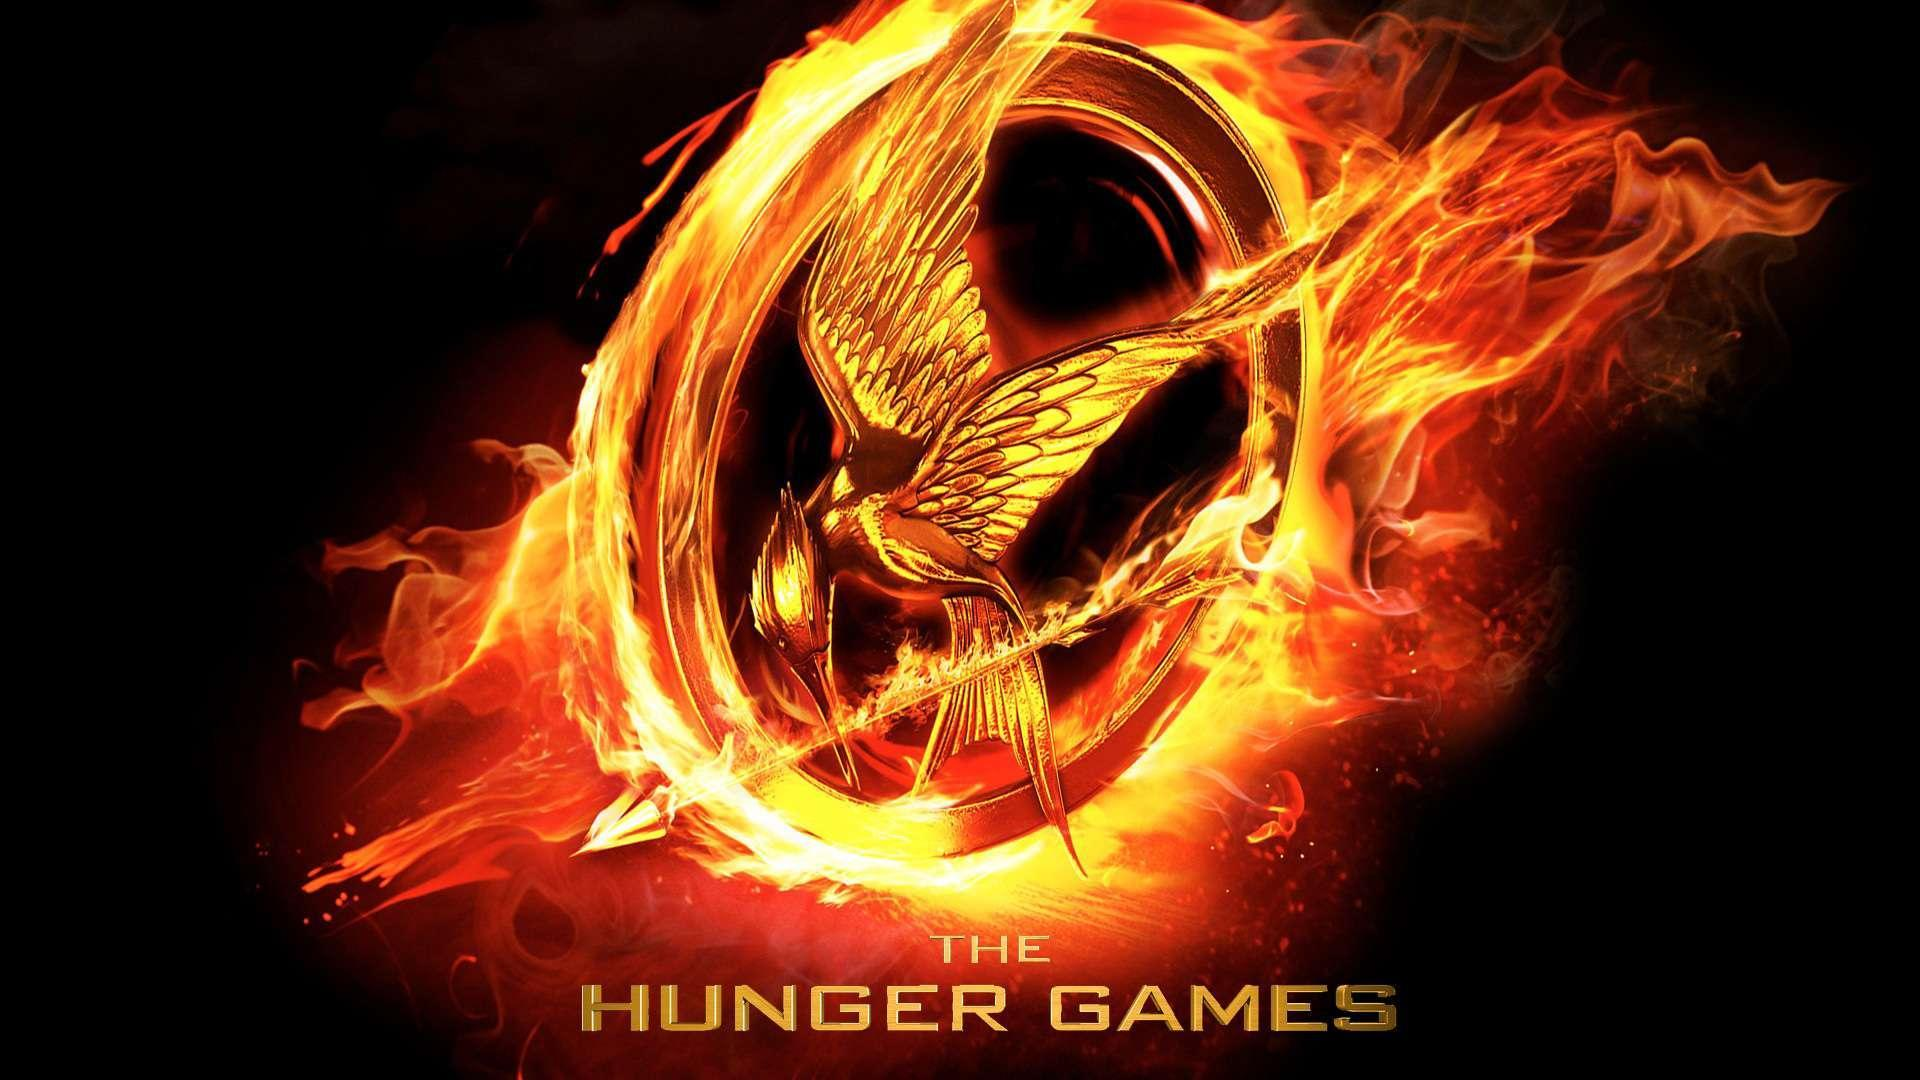 which year was the hunger games made in